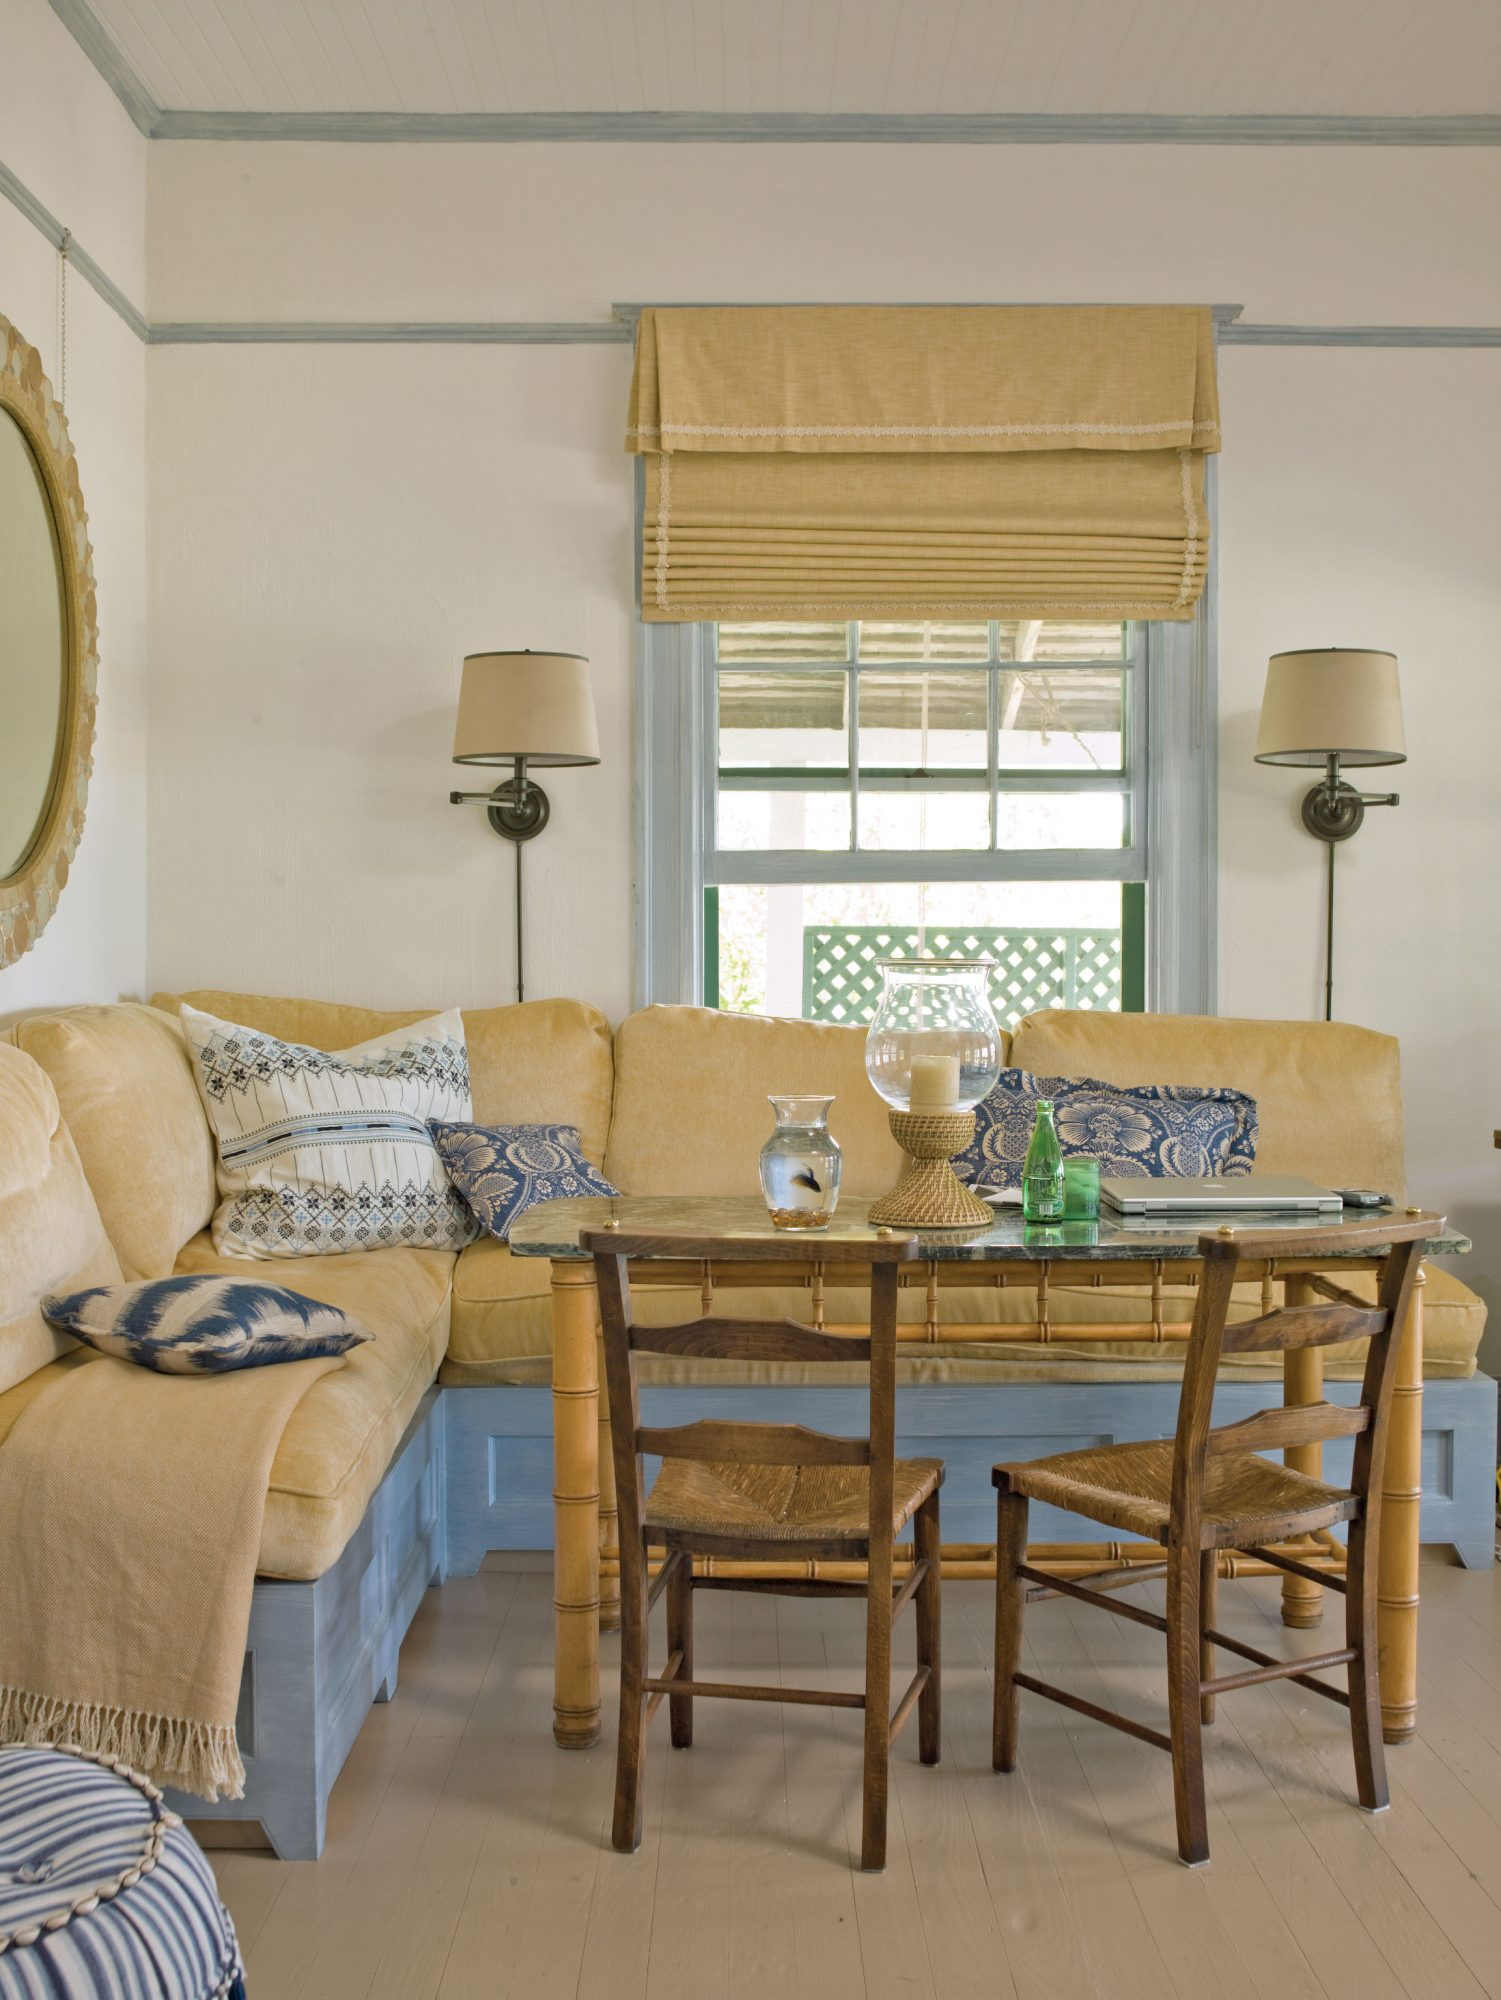 This plush seating area sees frequent use for eating or for a cozy reading nook or office. The natural golden shade of the cushions forgives sandy feet, and the glossy paint on the wood floors is ideal for a beach cottage because it's a low-cost, high-charm treatment.